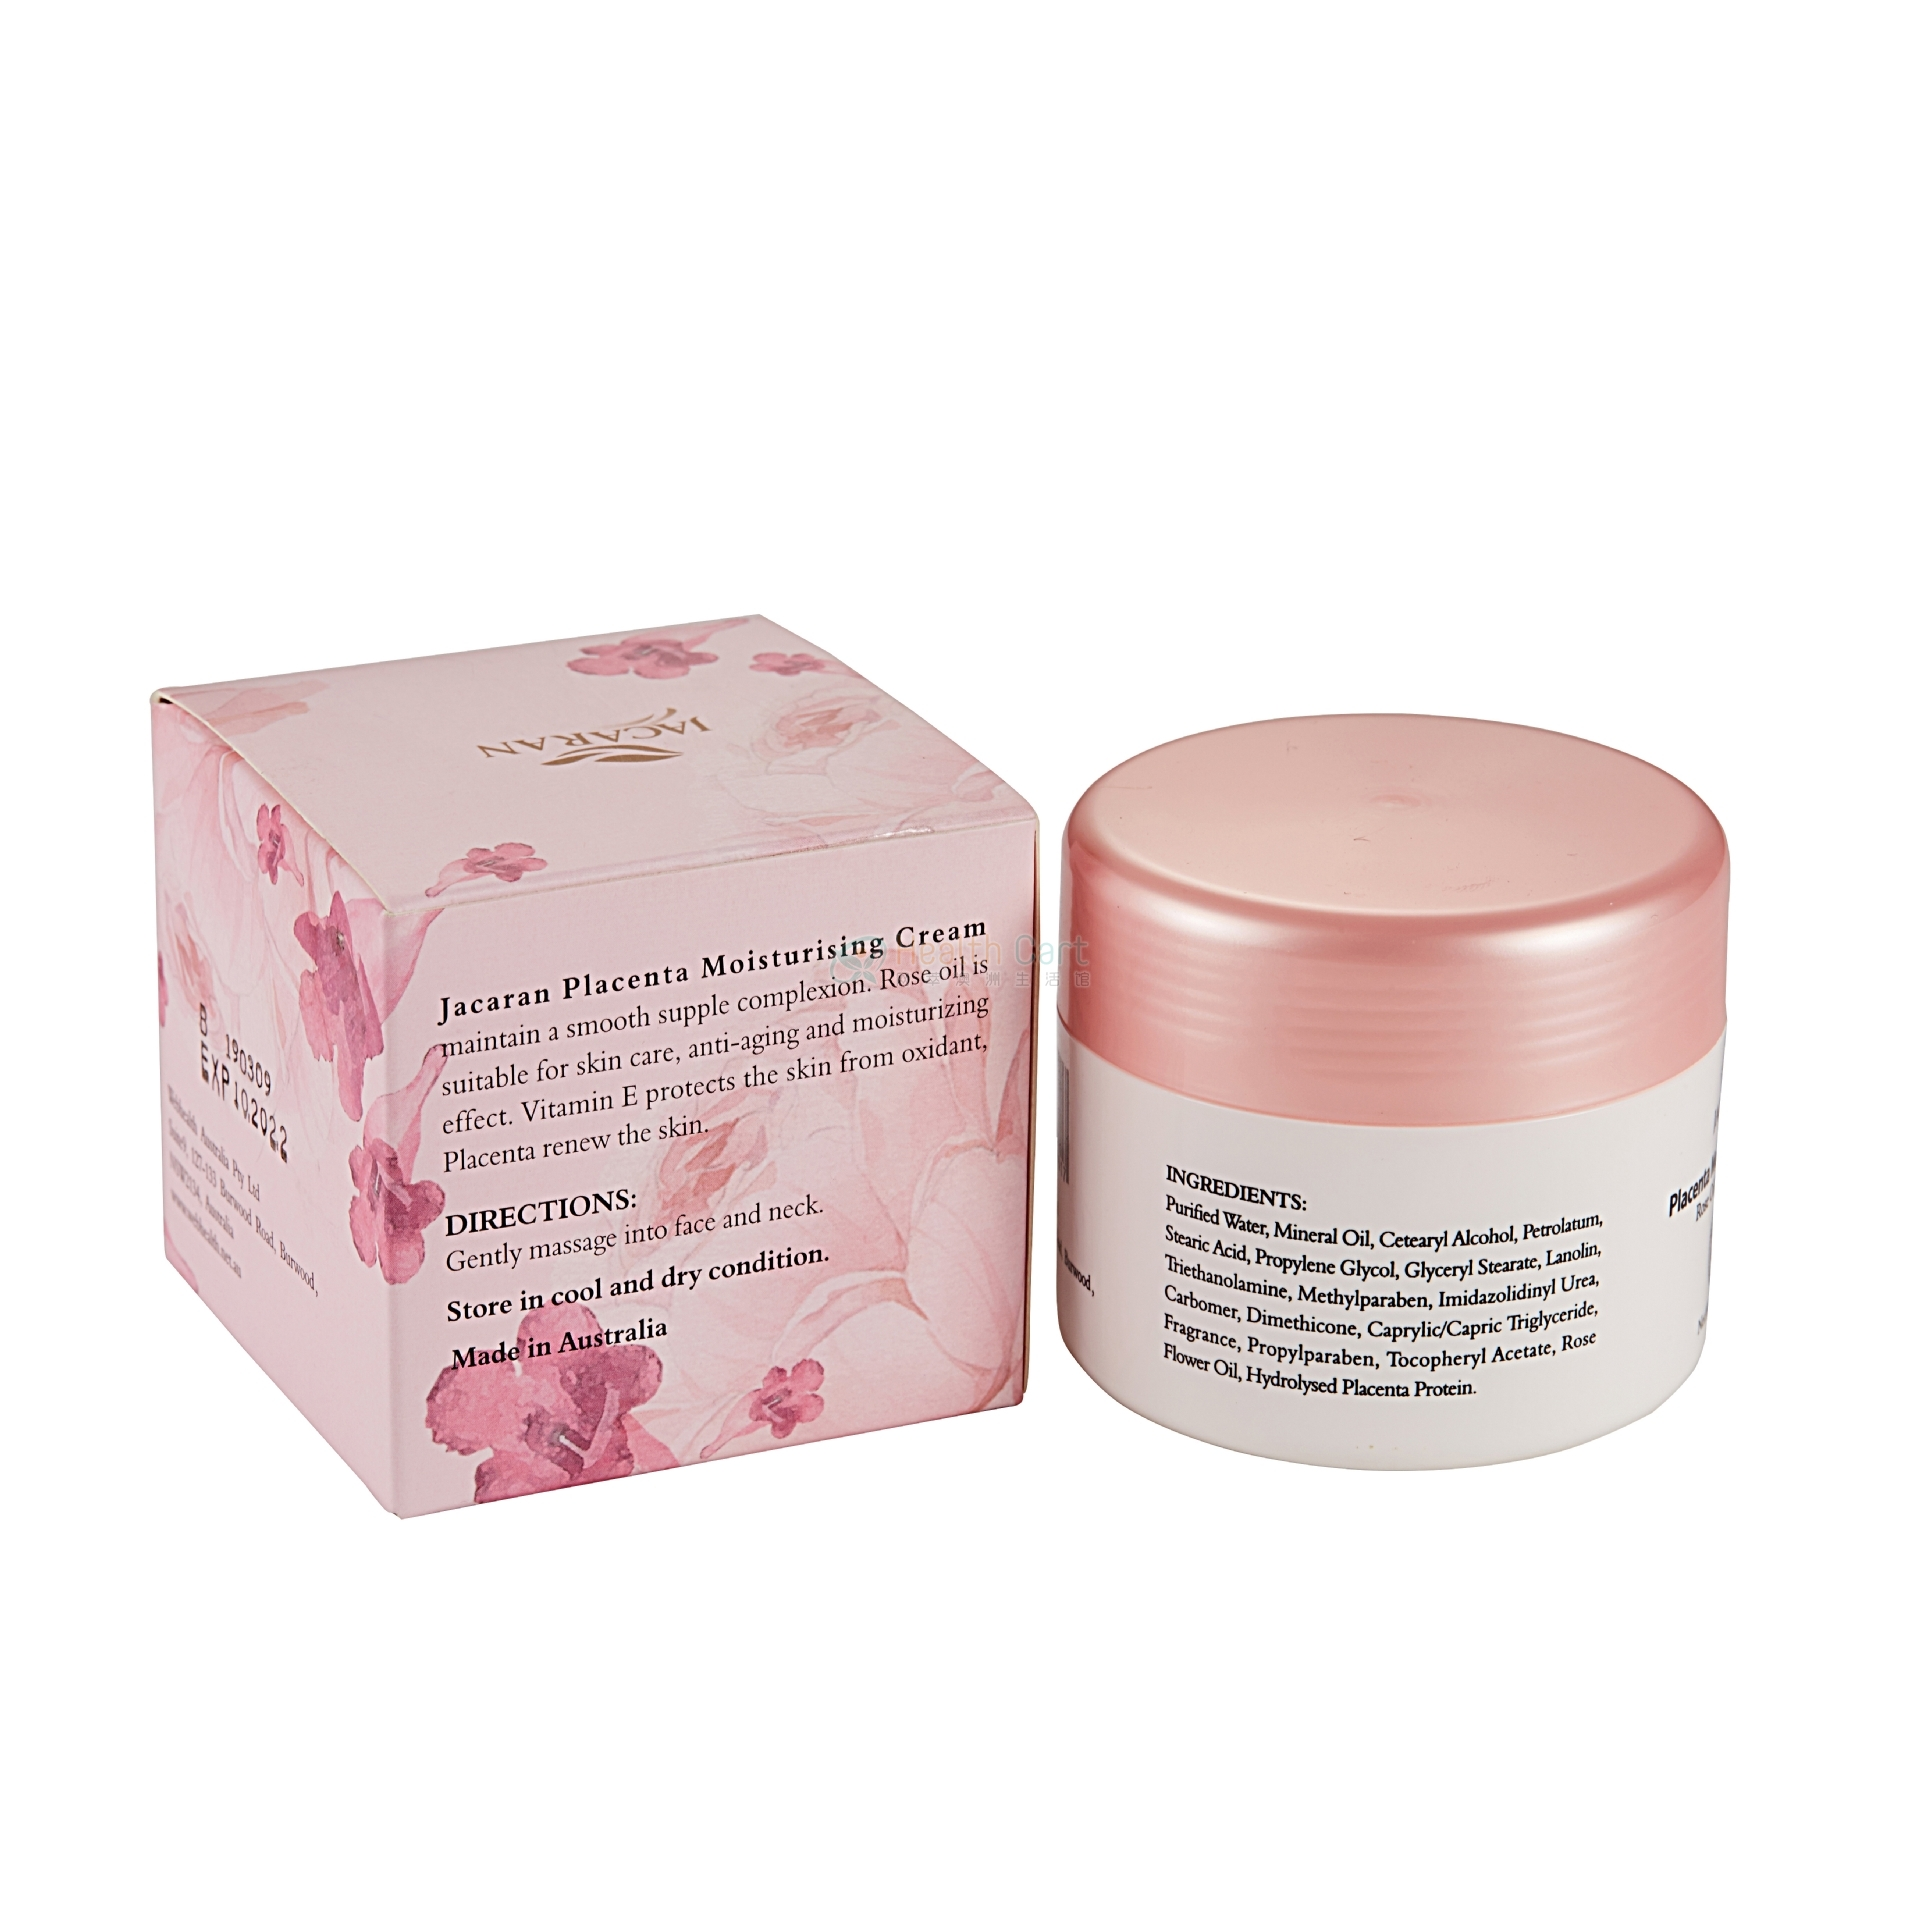 Jacaran Placenta Moisturising Cream Rose Oil with Vitamin E 100g - 100 ml rose essential oil from jakari sheep oil jacaran australia - 4    - Health Cart